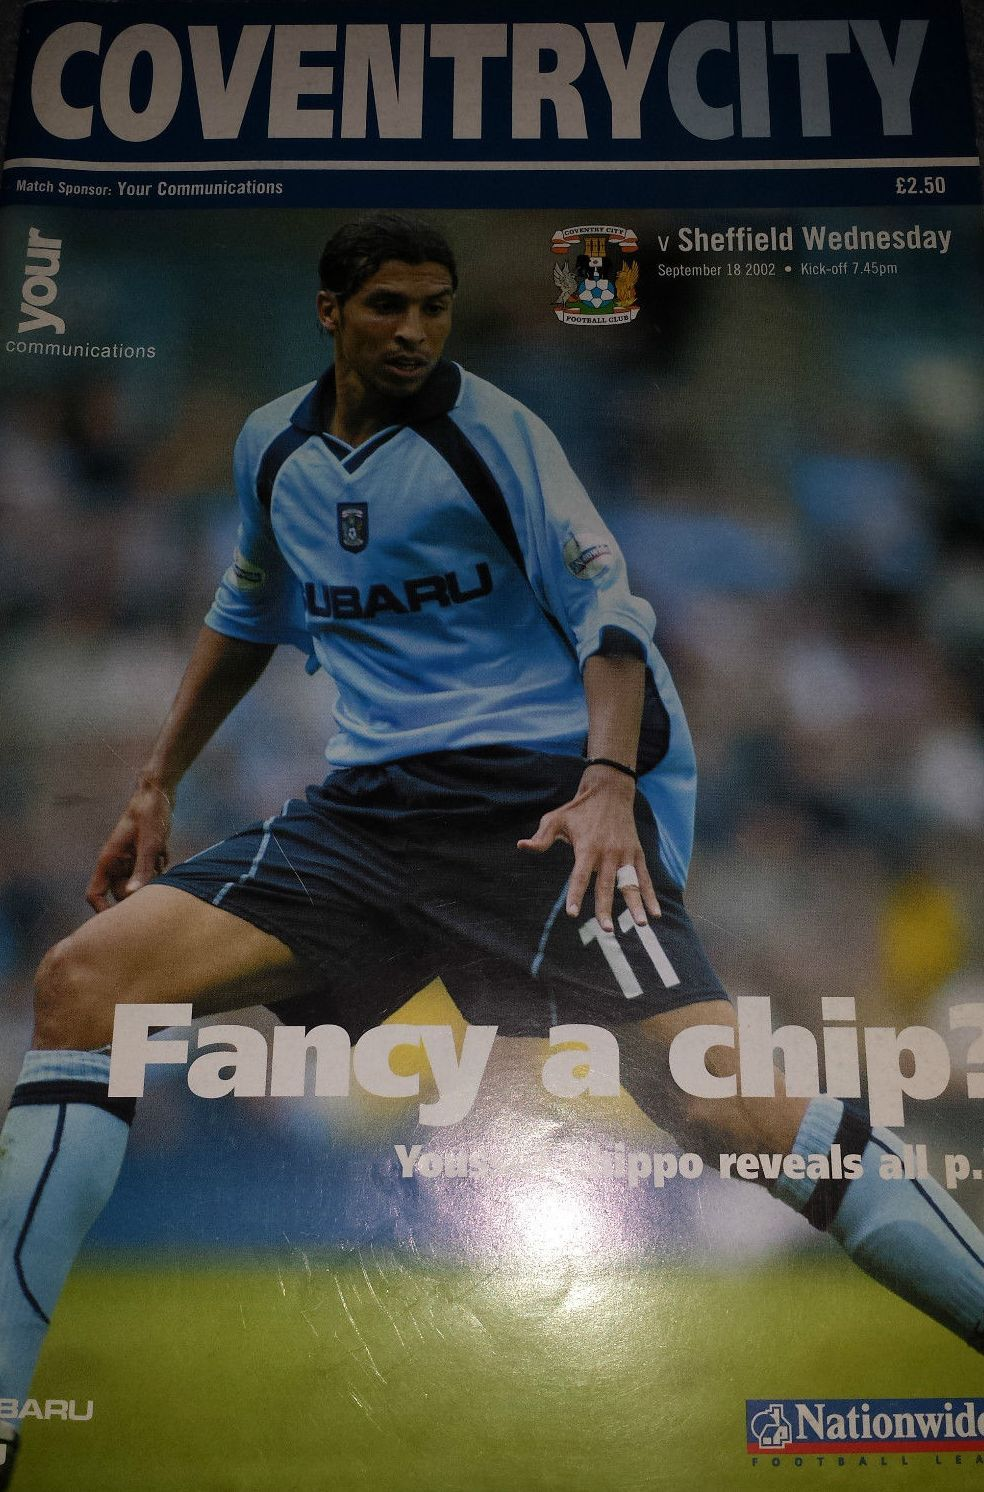 Pin on Coventry City FC 200203 Home Programmes